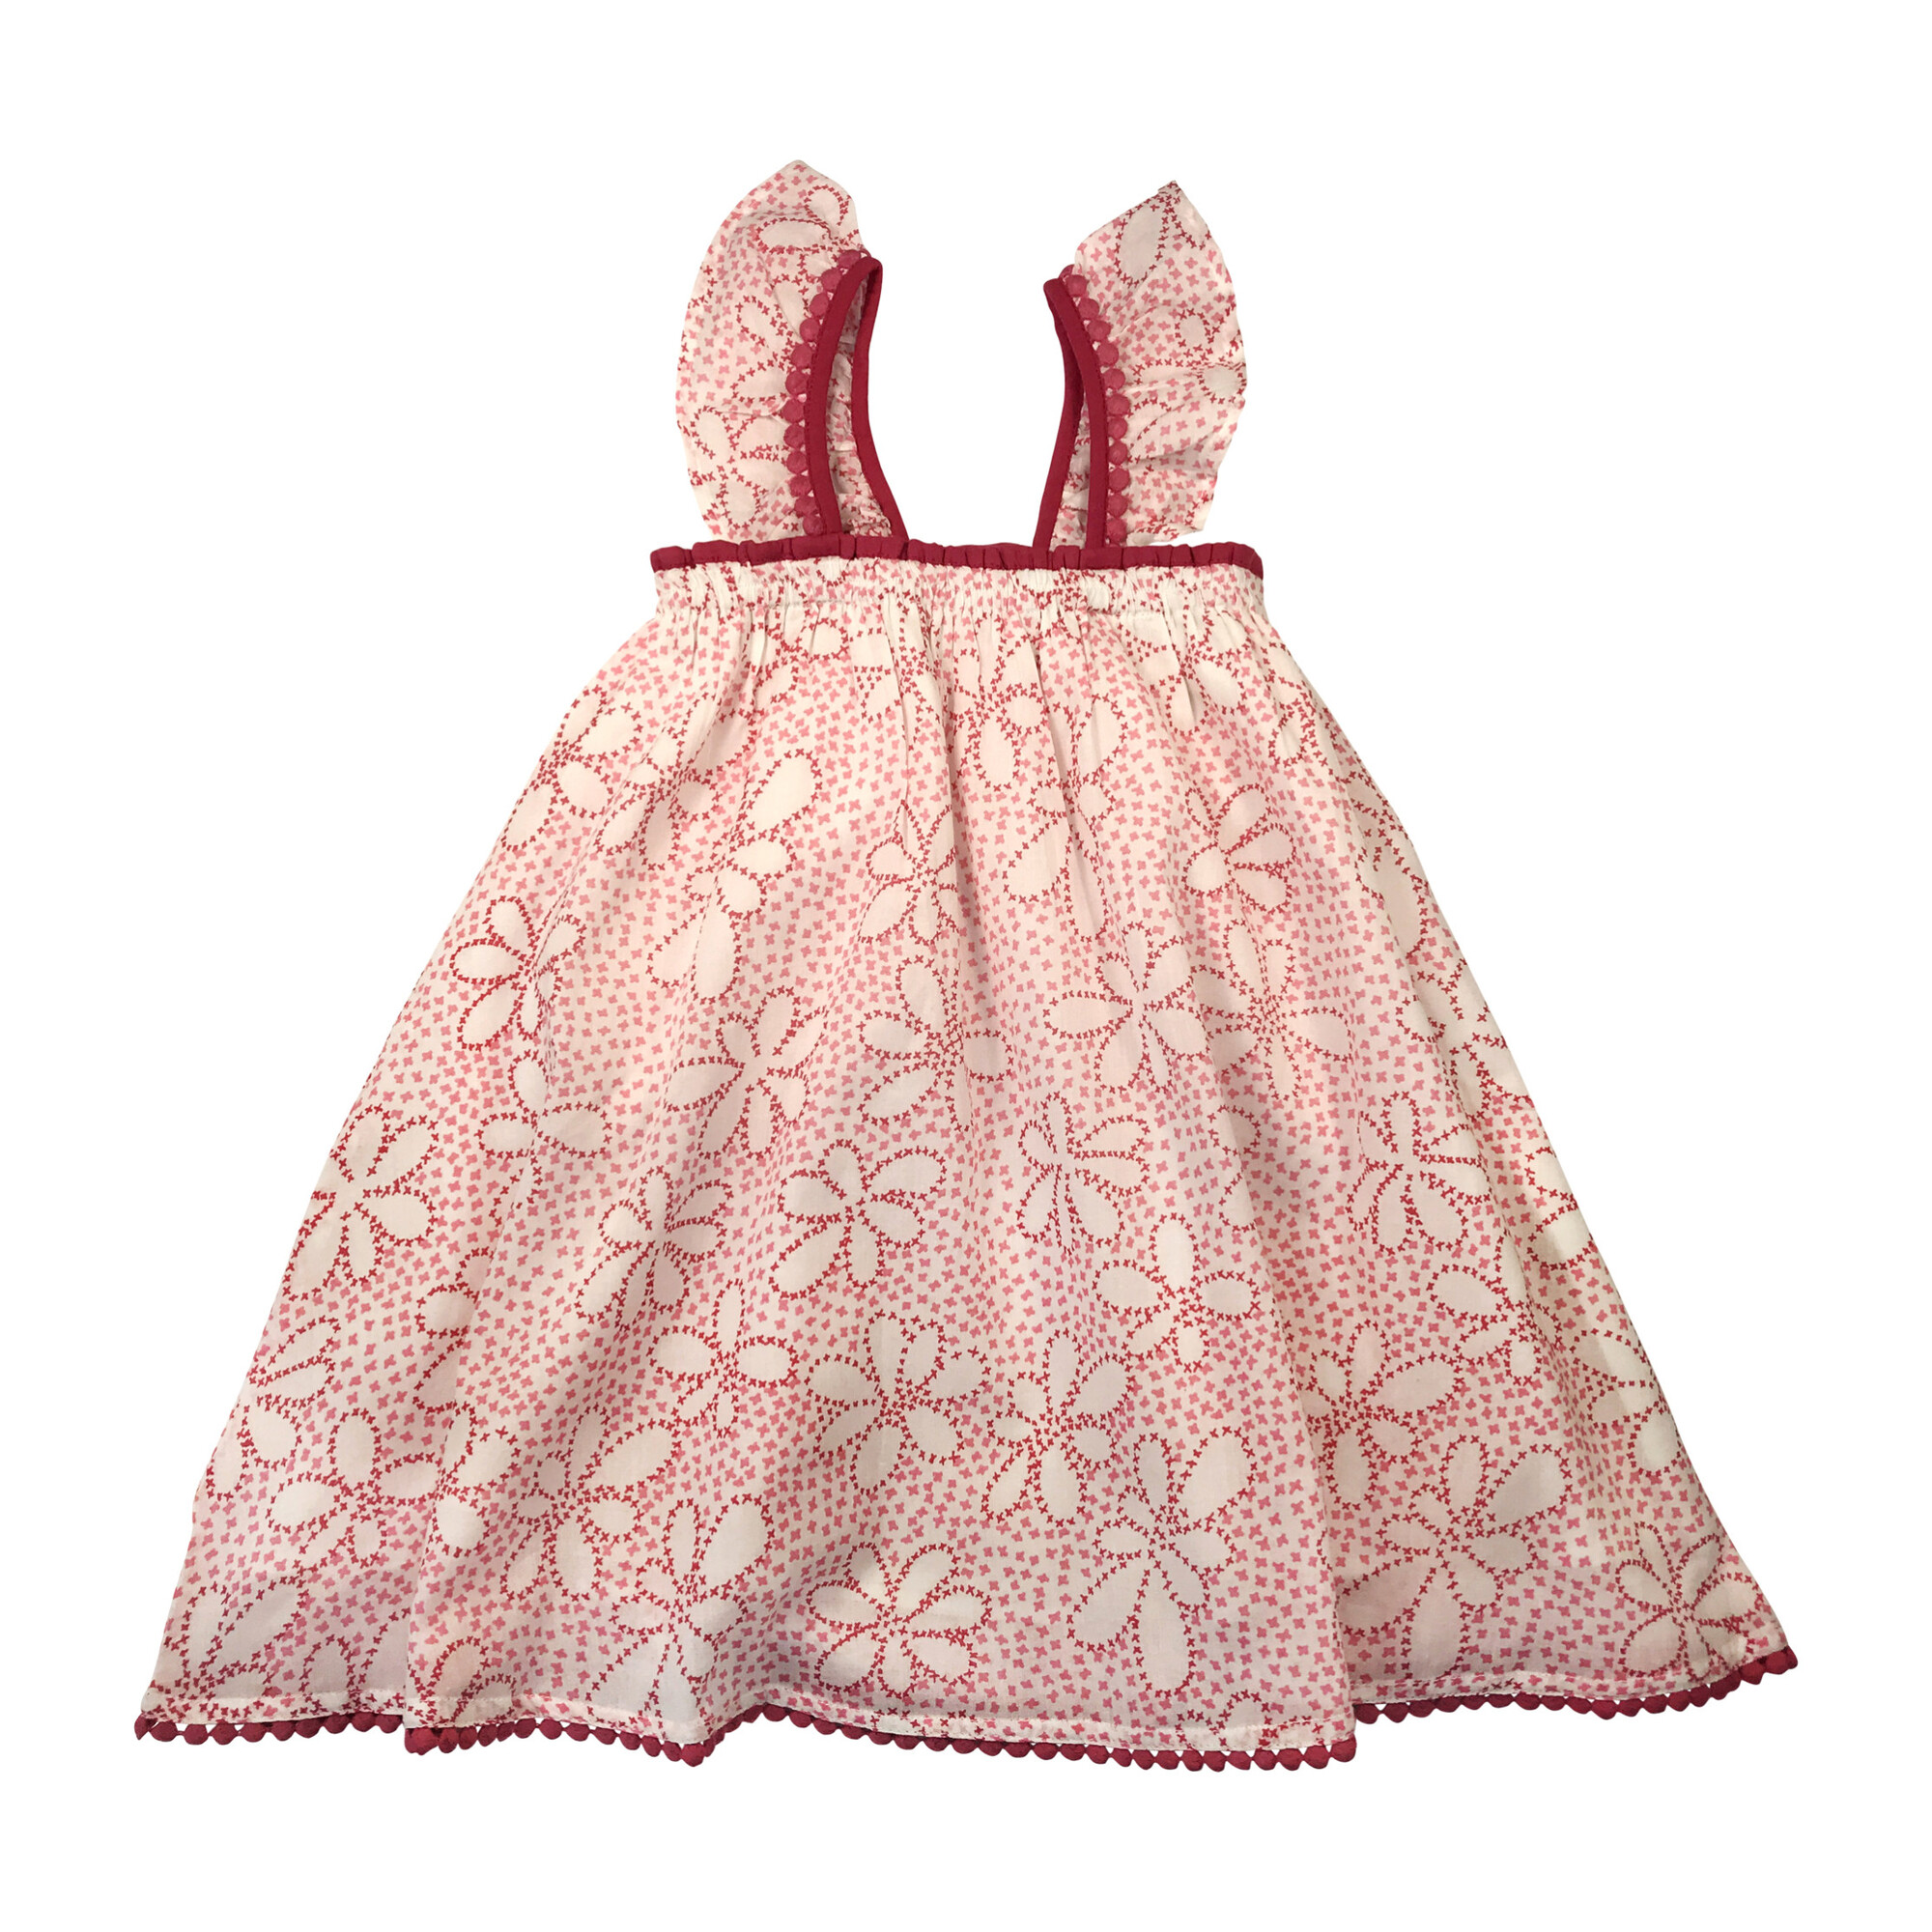 Molly Dress, Pink Floral